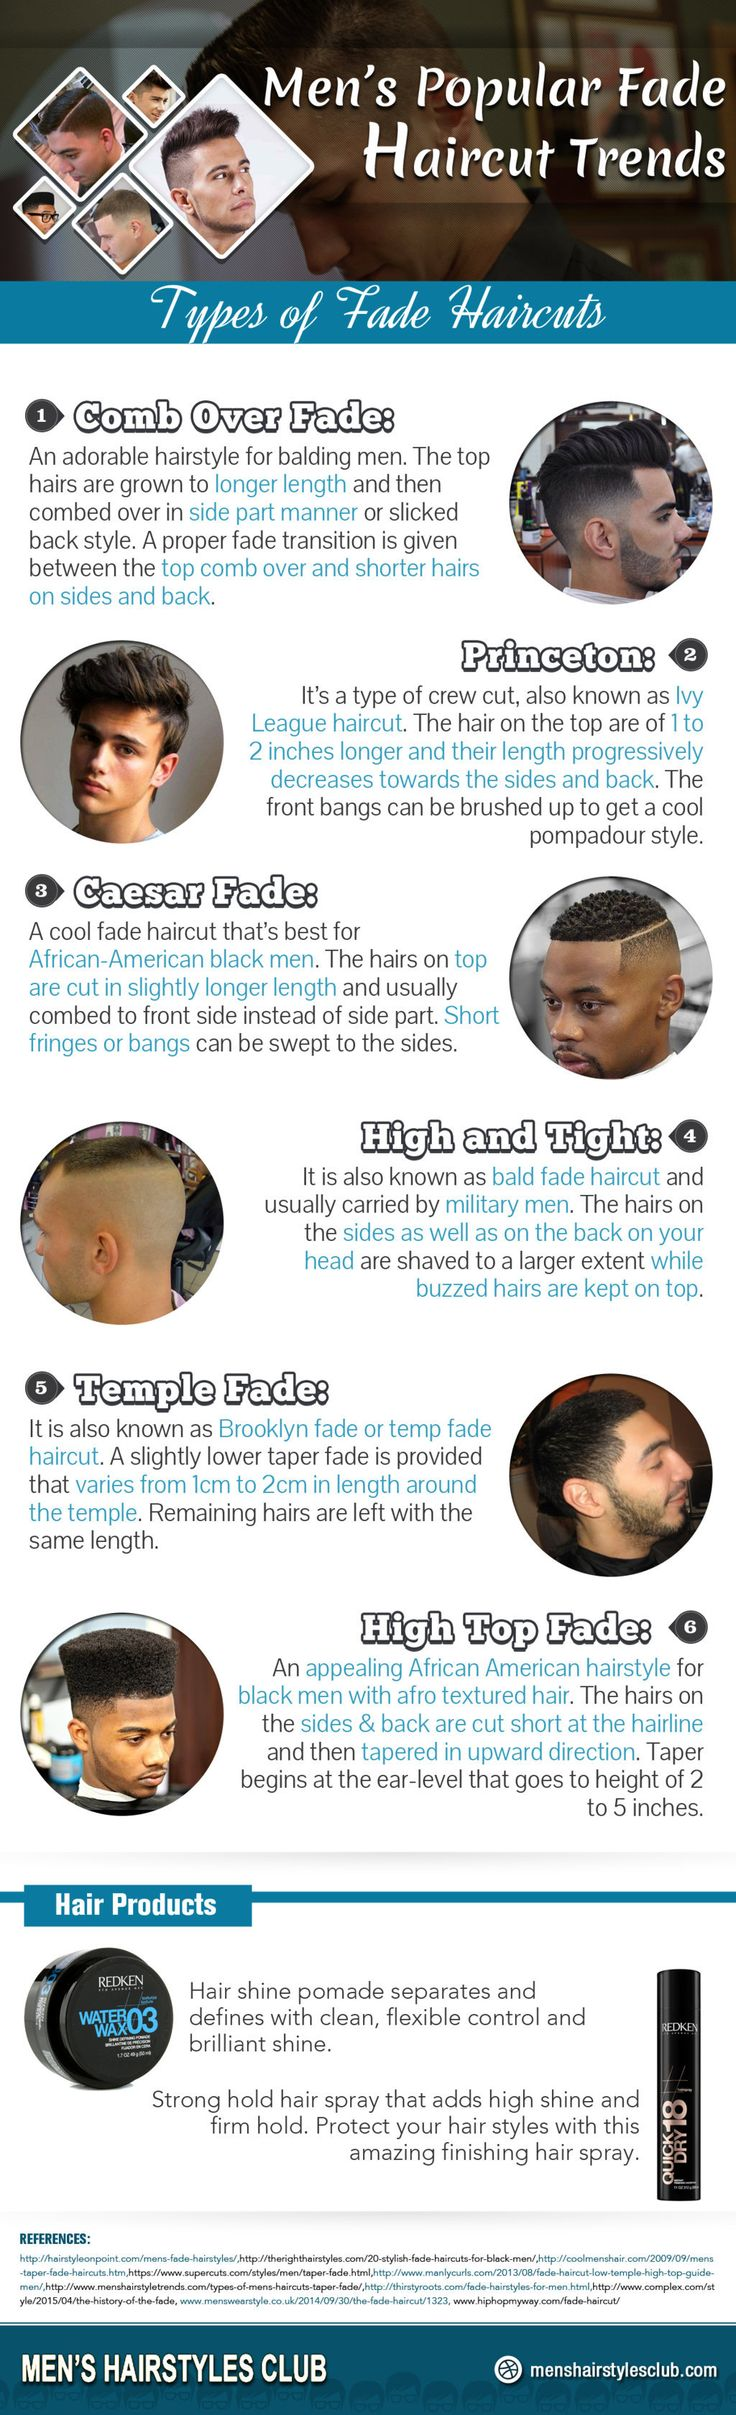 Nice Men's Popular Fade Haircut Trends & Types (Infographic)